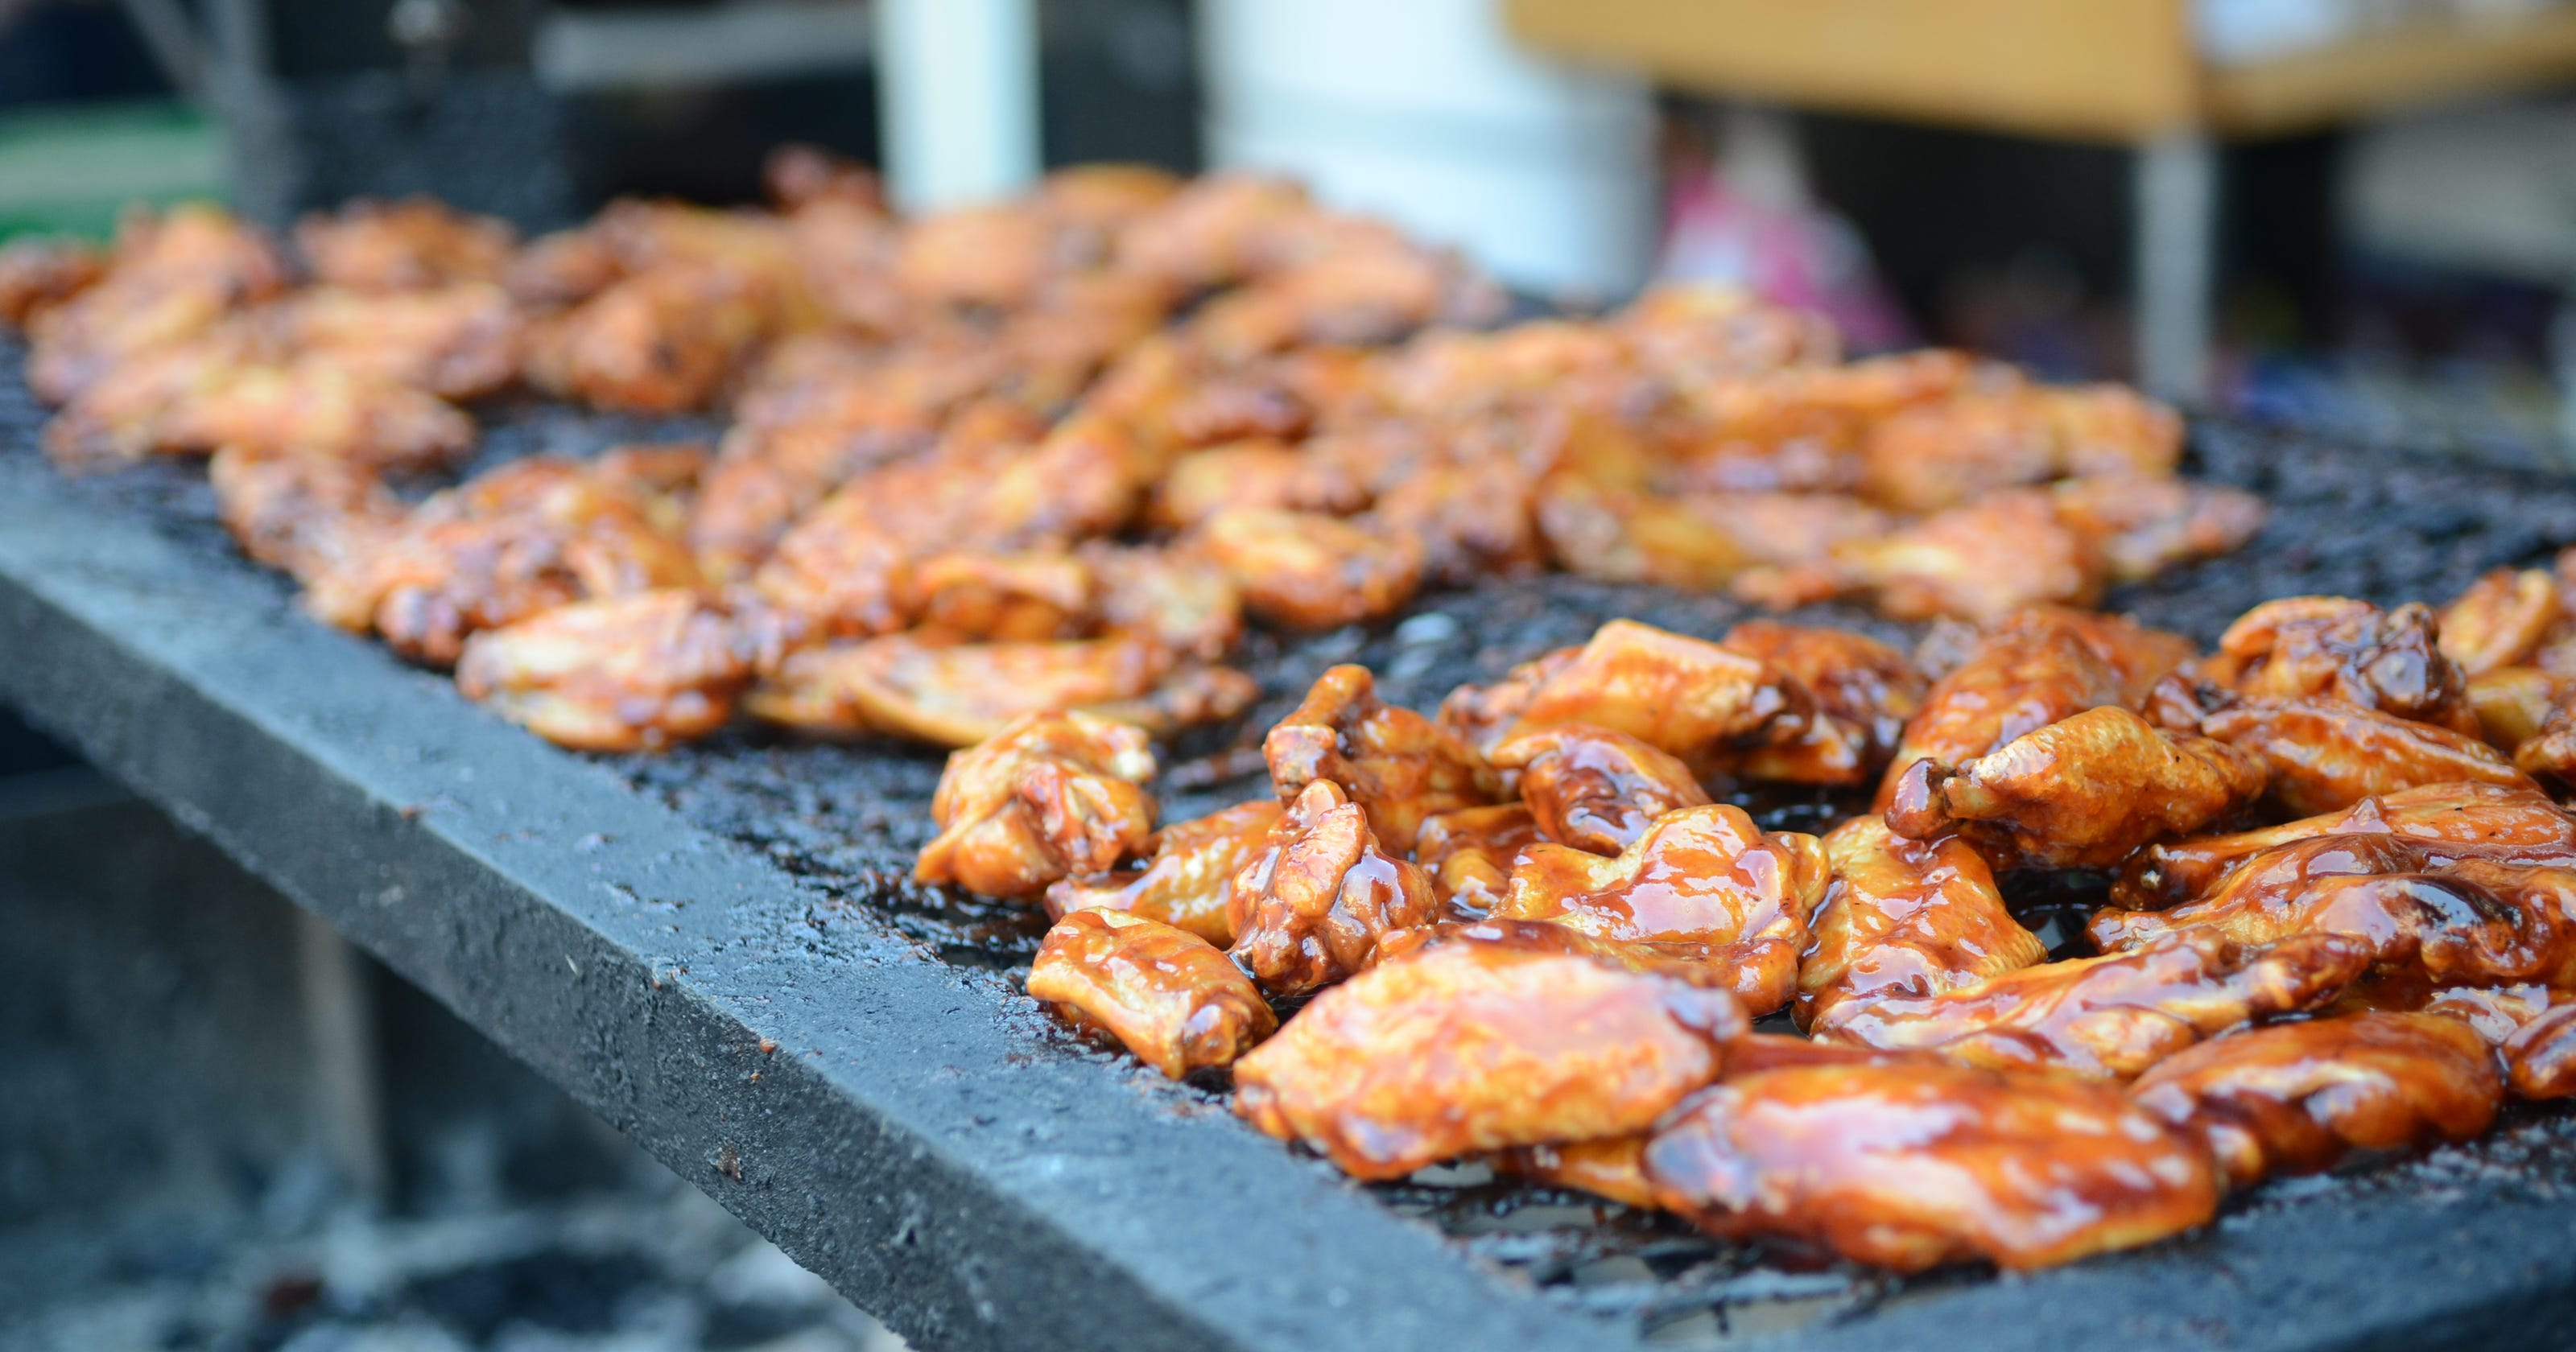 Biggest Little City Wing Fest starts Friday